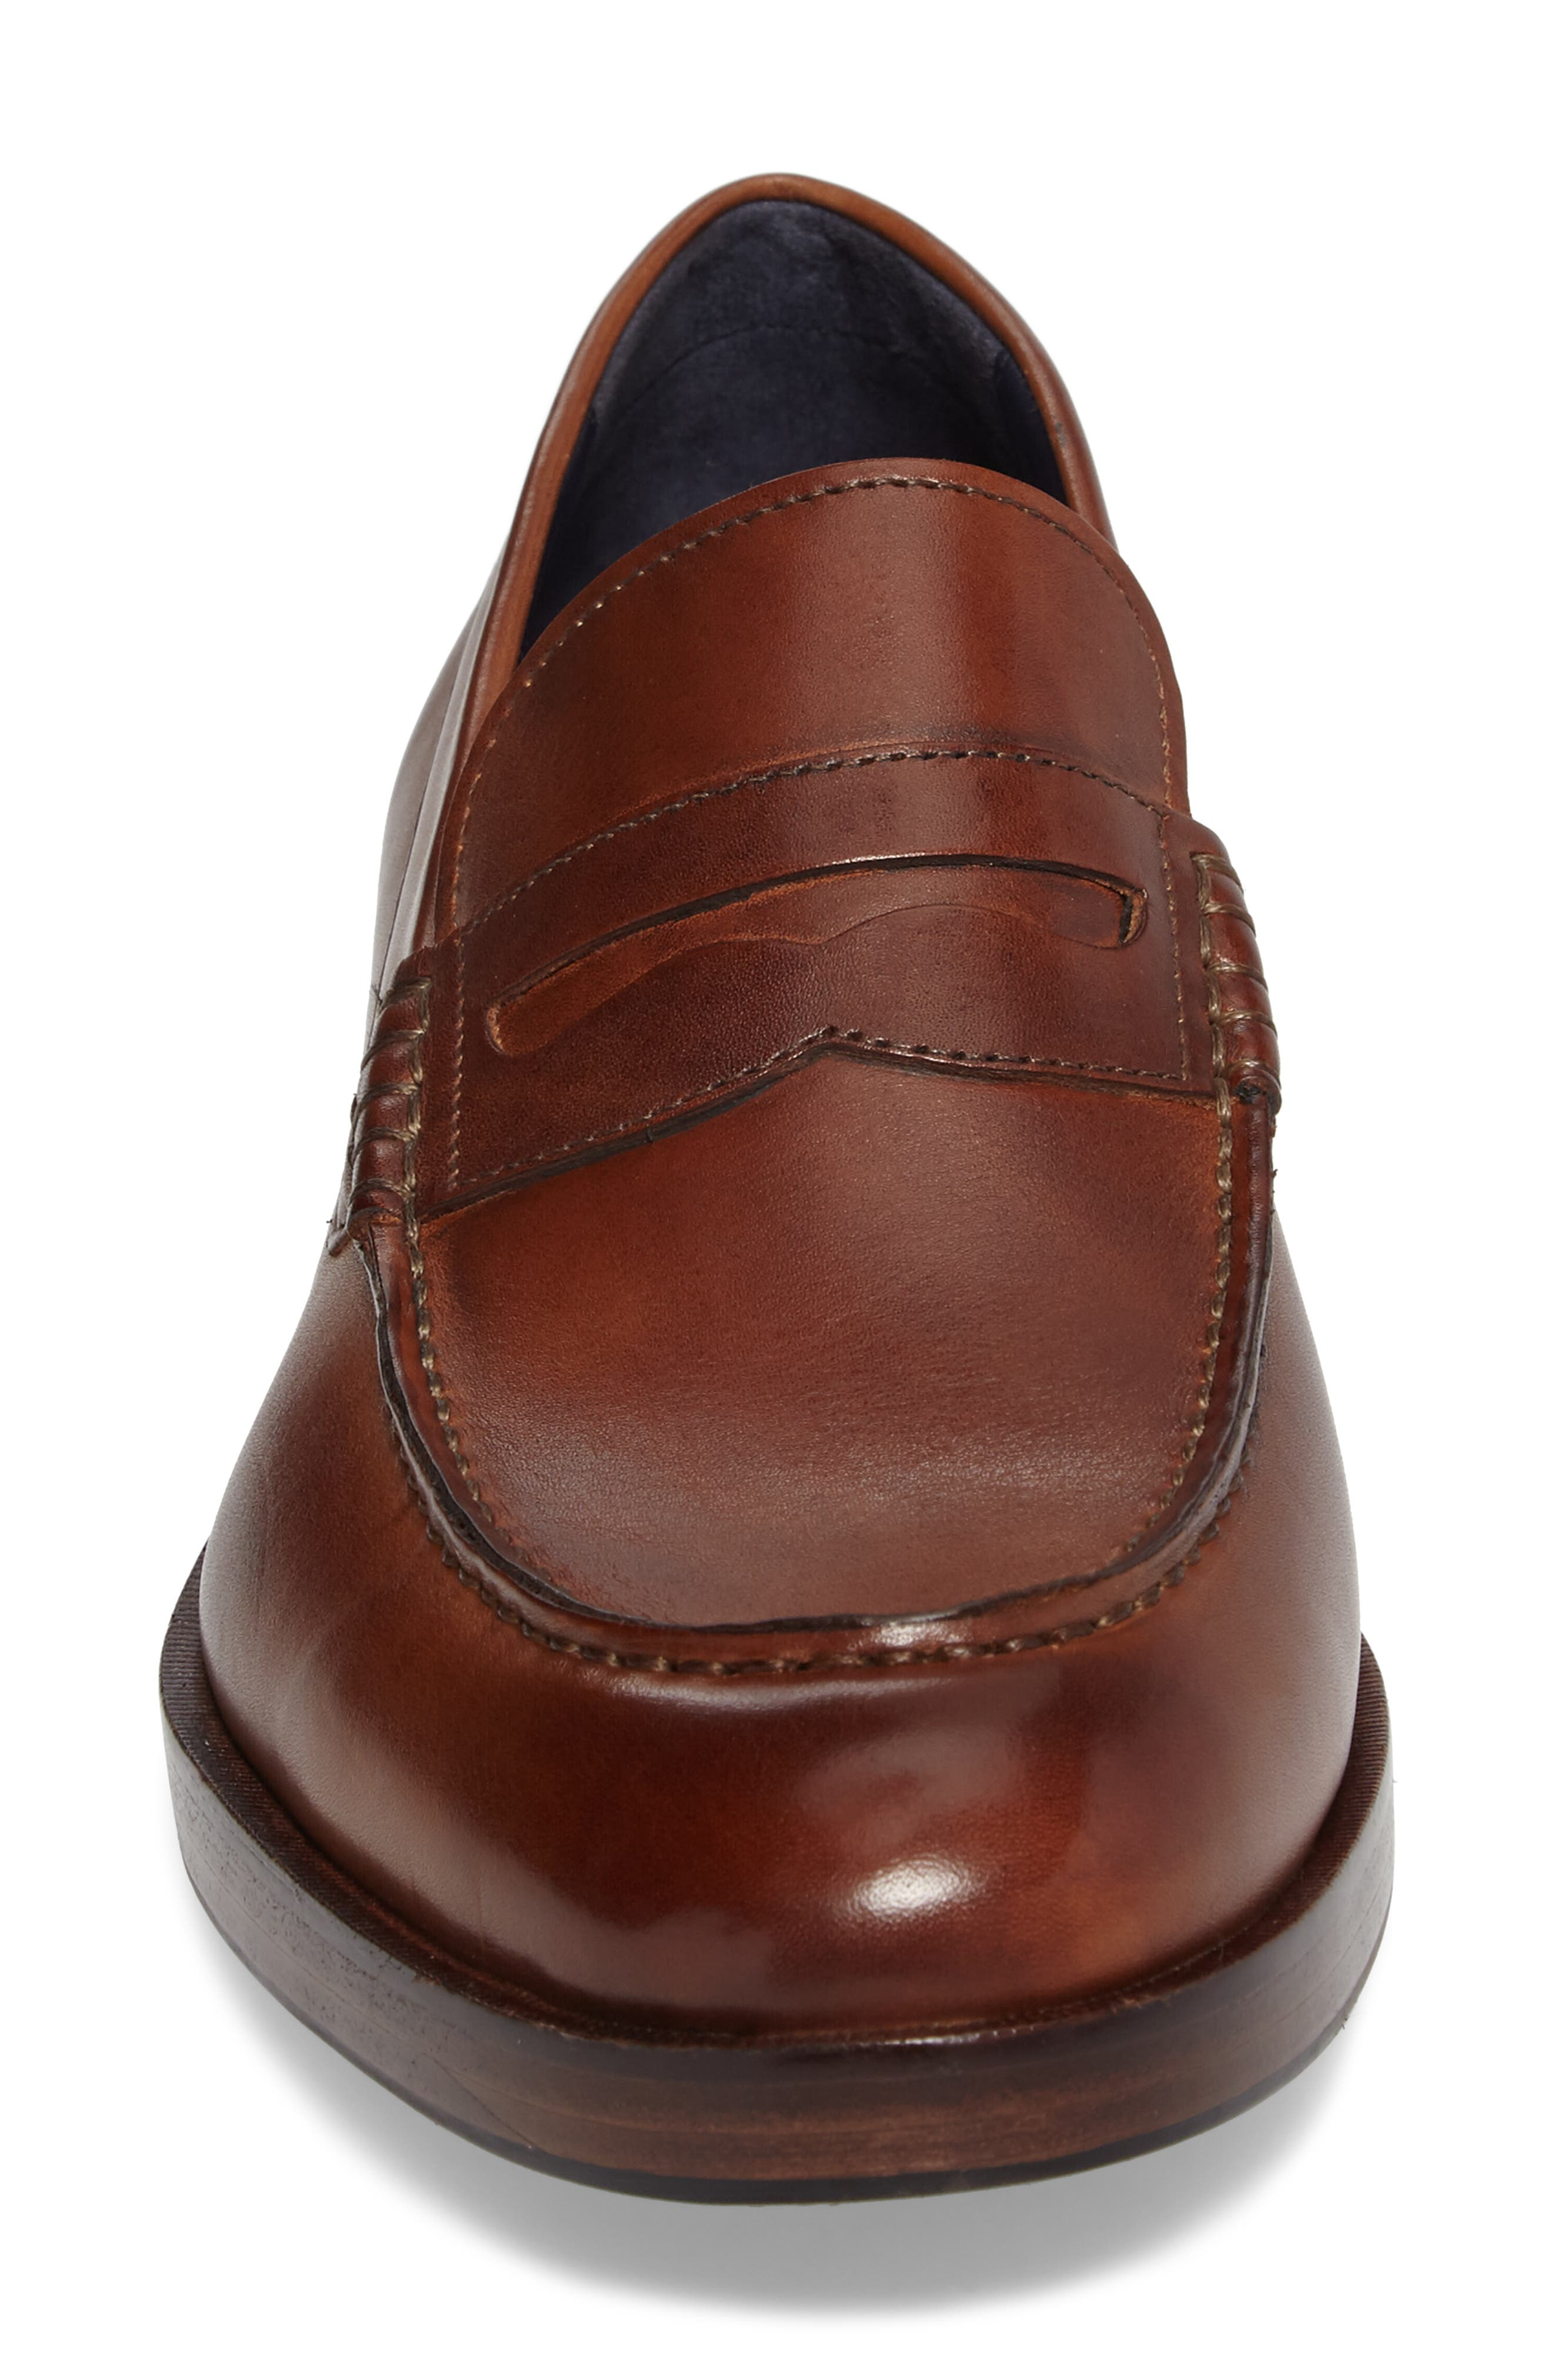 COLE HAAN, Harrison Grand Penny Loafer, Alternate thumbnail 4, color, COGNAC/ DARK NATURAL LEATHER